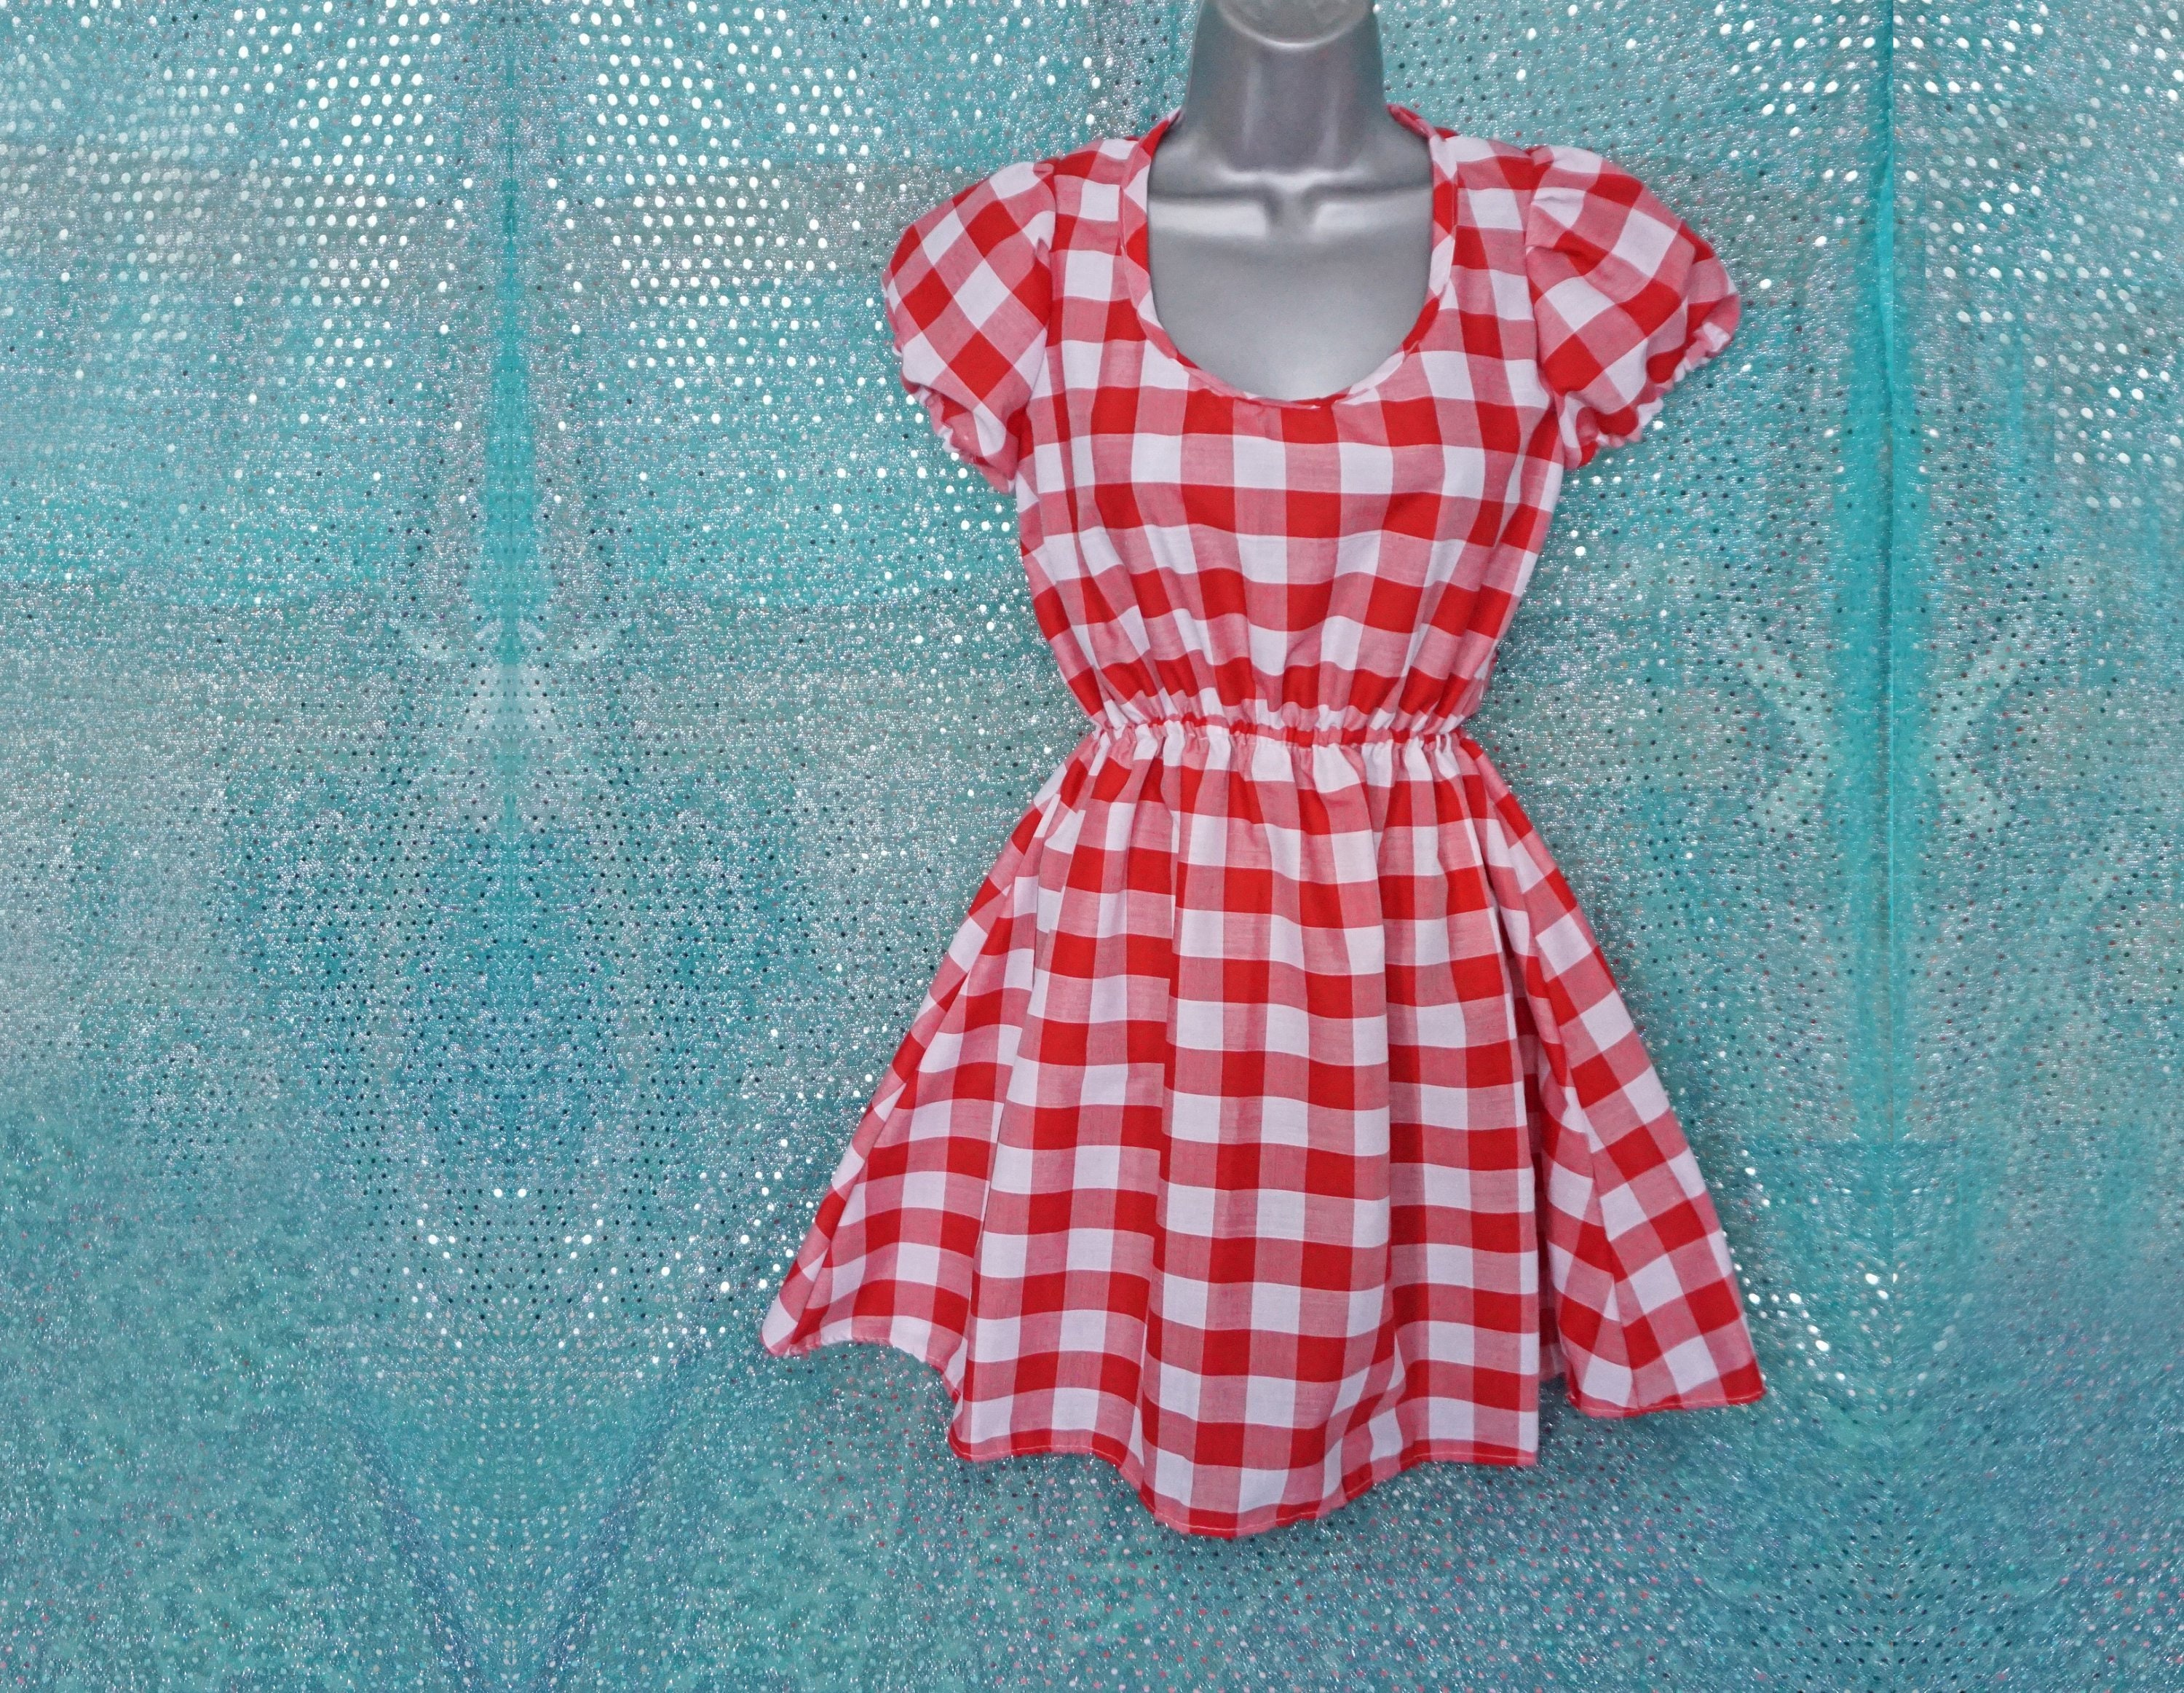 Adult baby doll dress